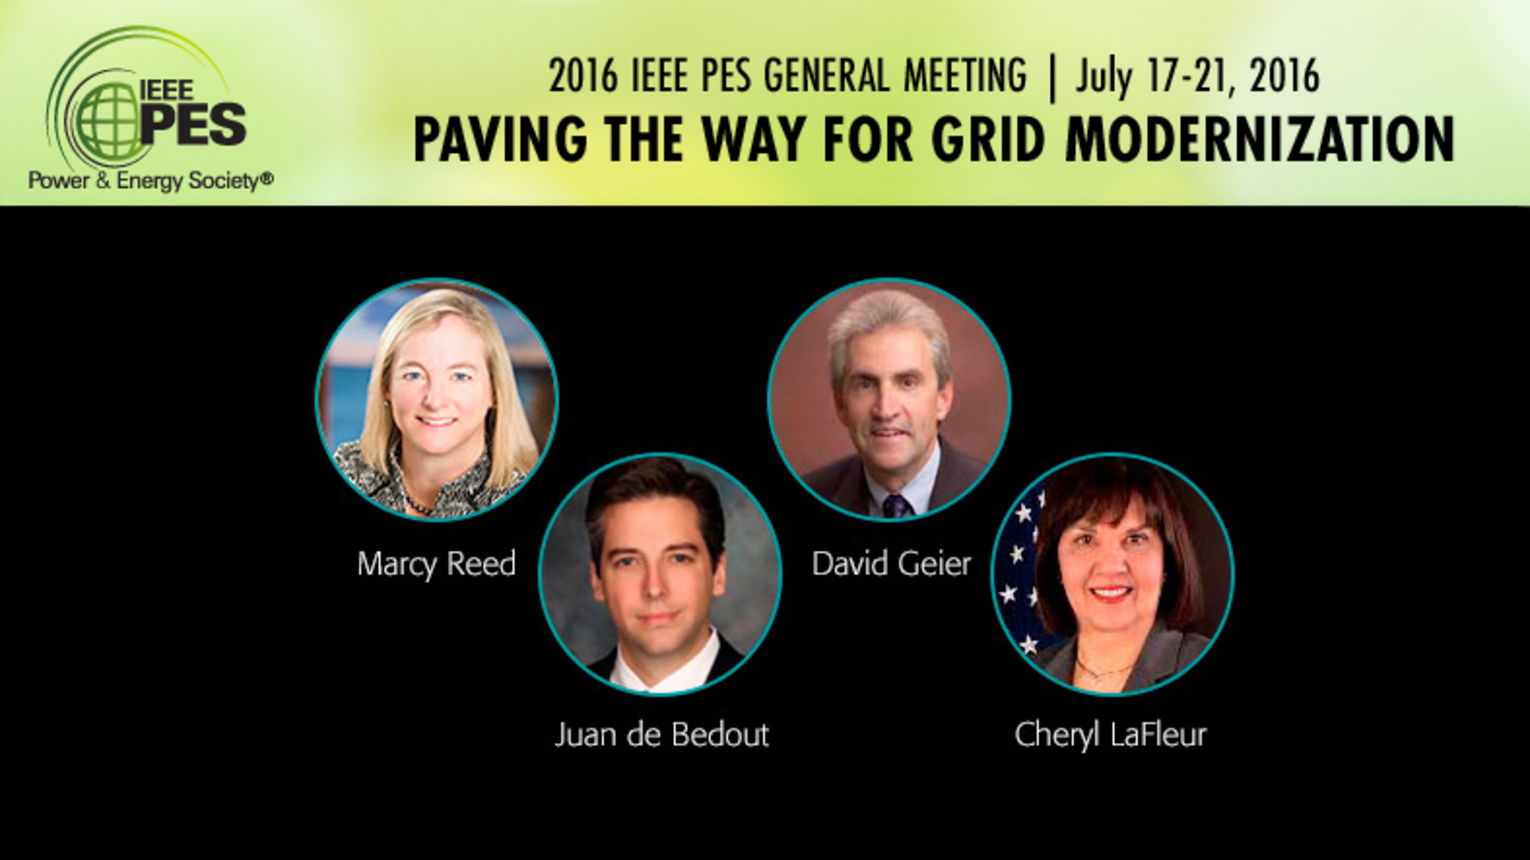 2016 IEEE PES General Meeting: Members Meeting & Plenary Session